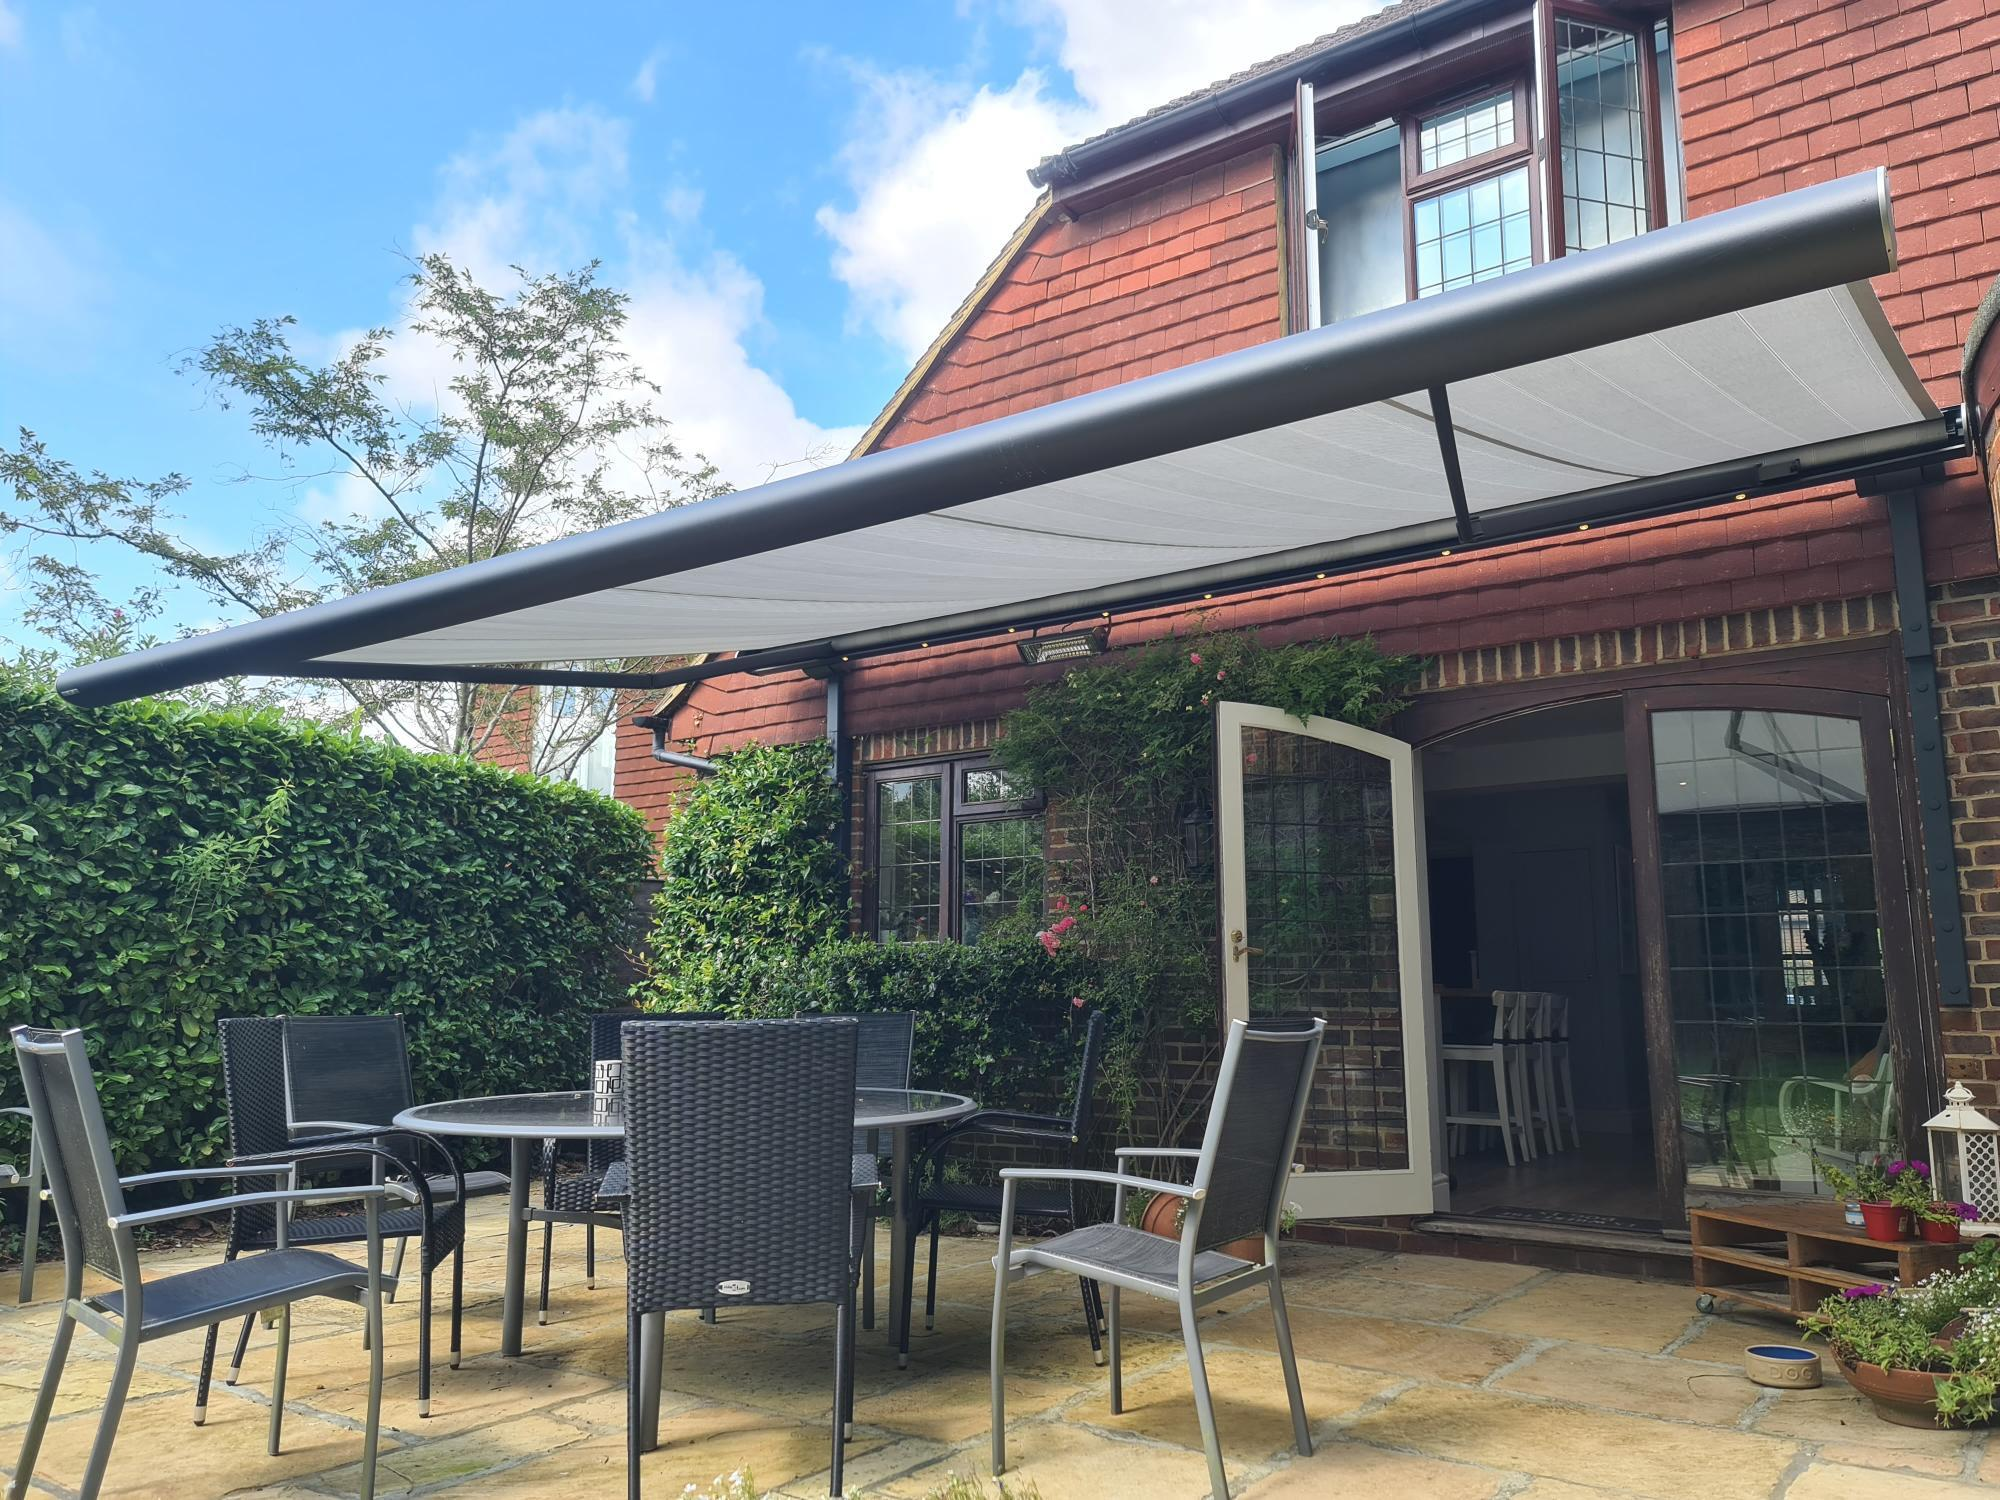 GUILDFORD - PATIO AWNING